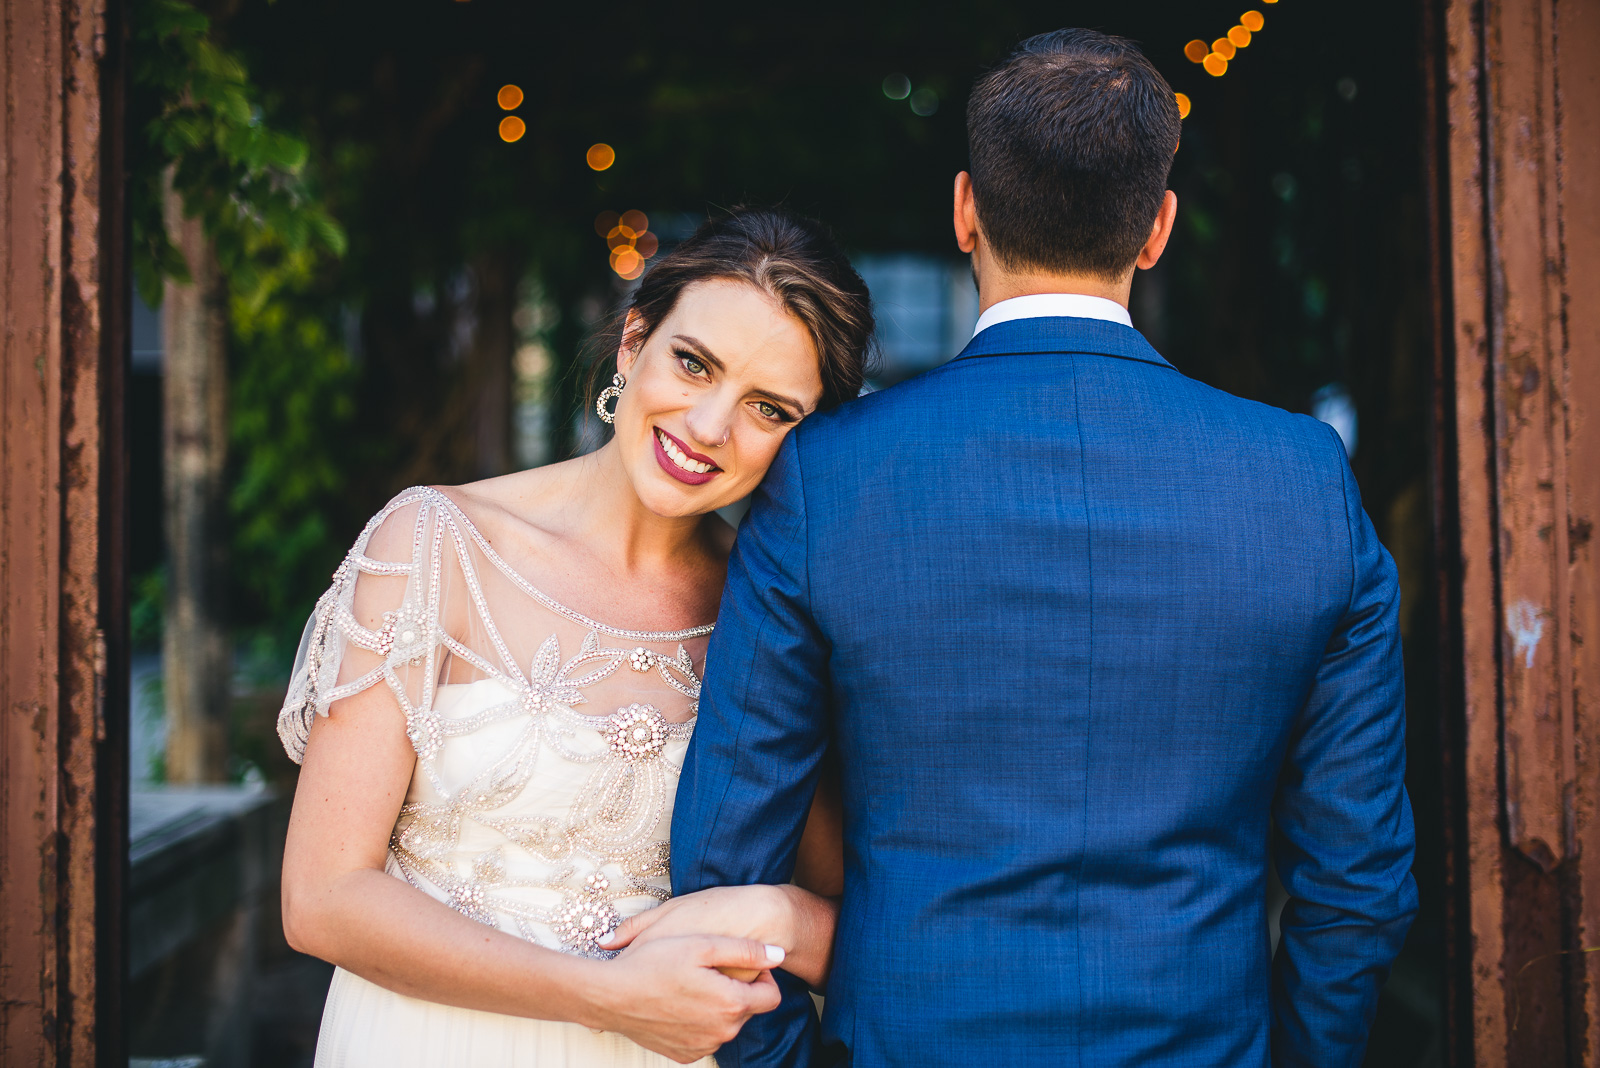 61 chicago wedding photographer best portraits during weddings review 1 - 2018 in Review // My Favorite Chicago Wedding Photography Portraits